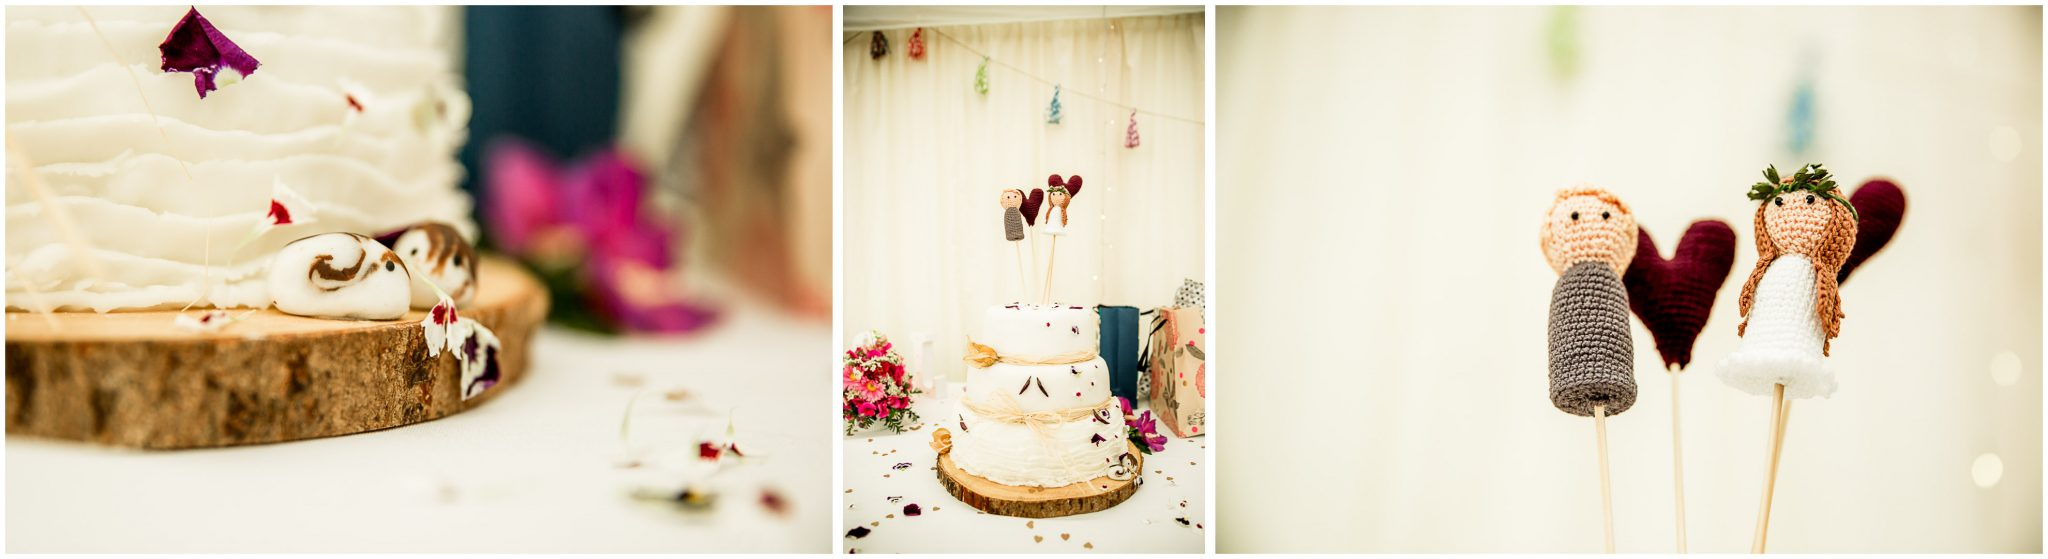 Timsbury Manor Festival Wedding cake details